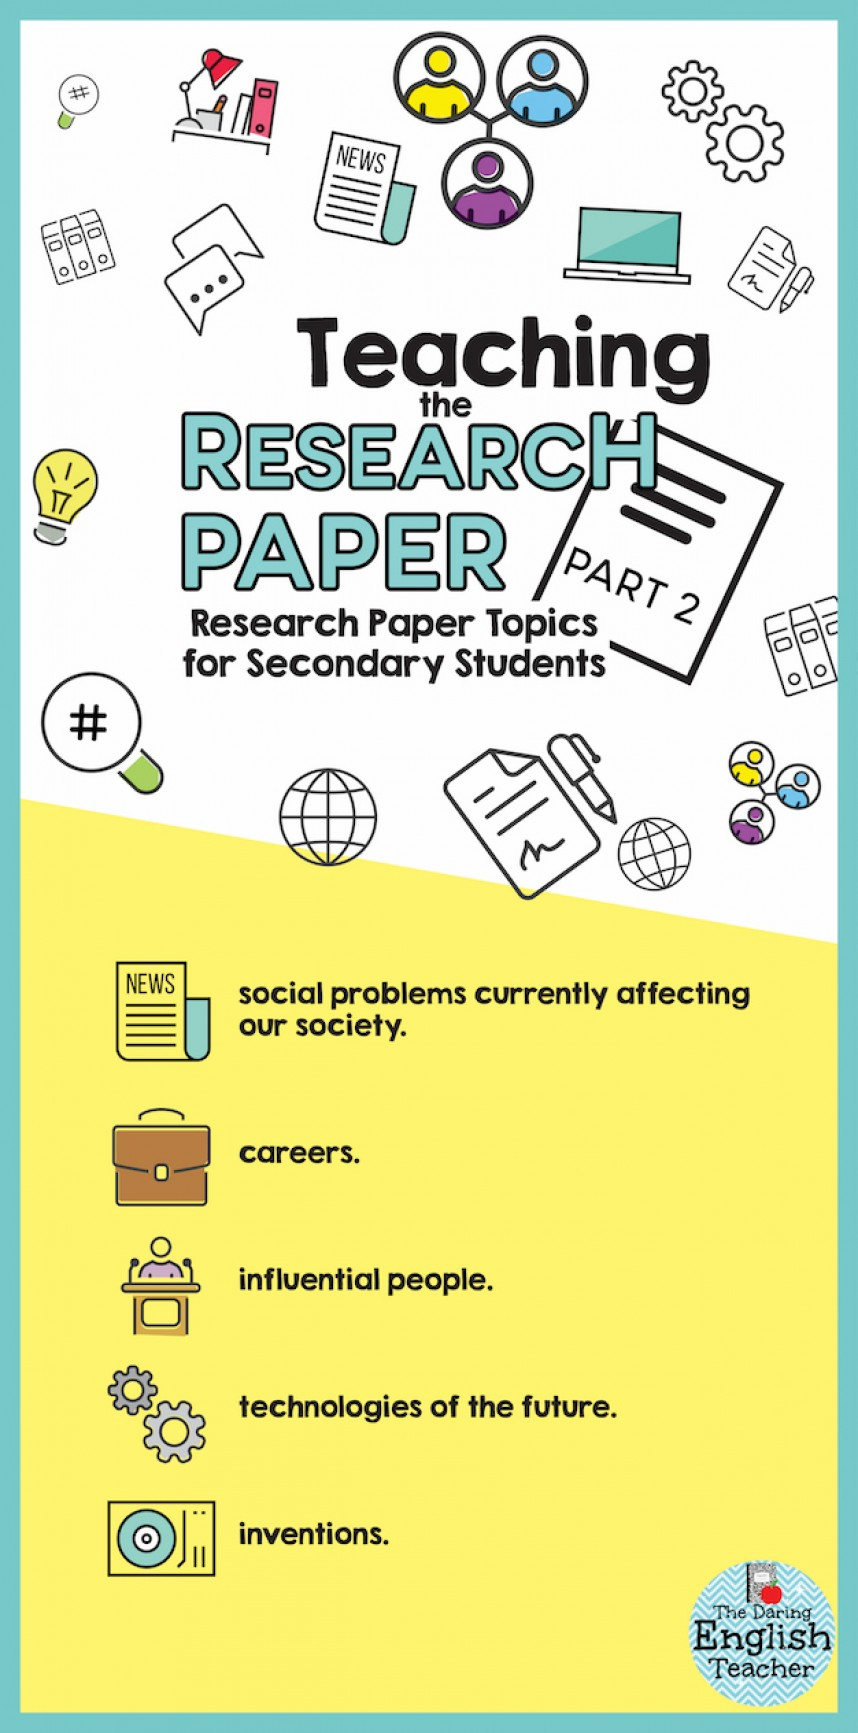 012 Research Paper Infographic2bp22b2 Topics High Incredible School Biology Science Seniors 868